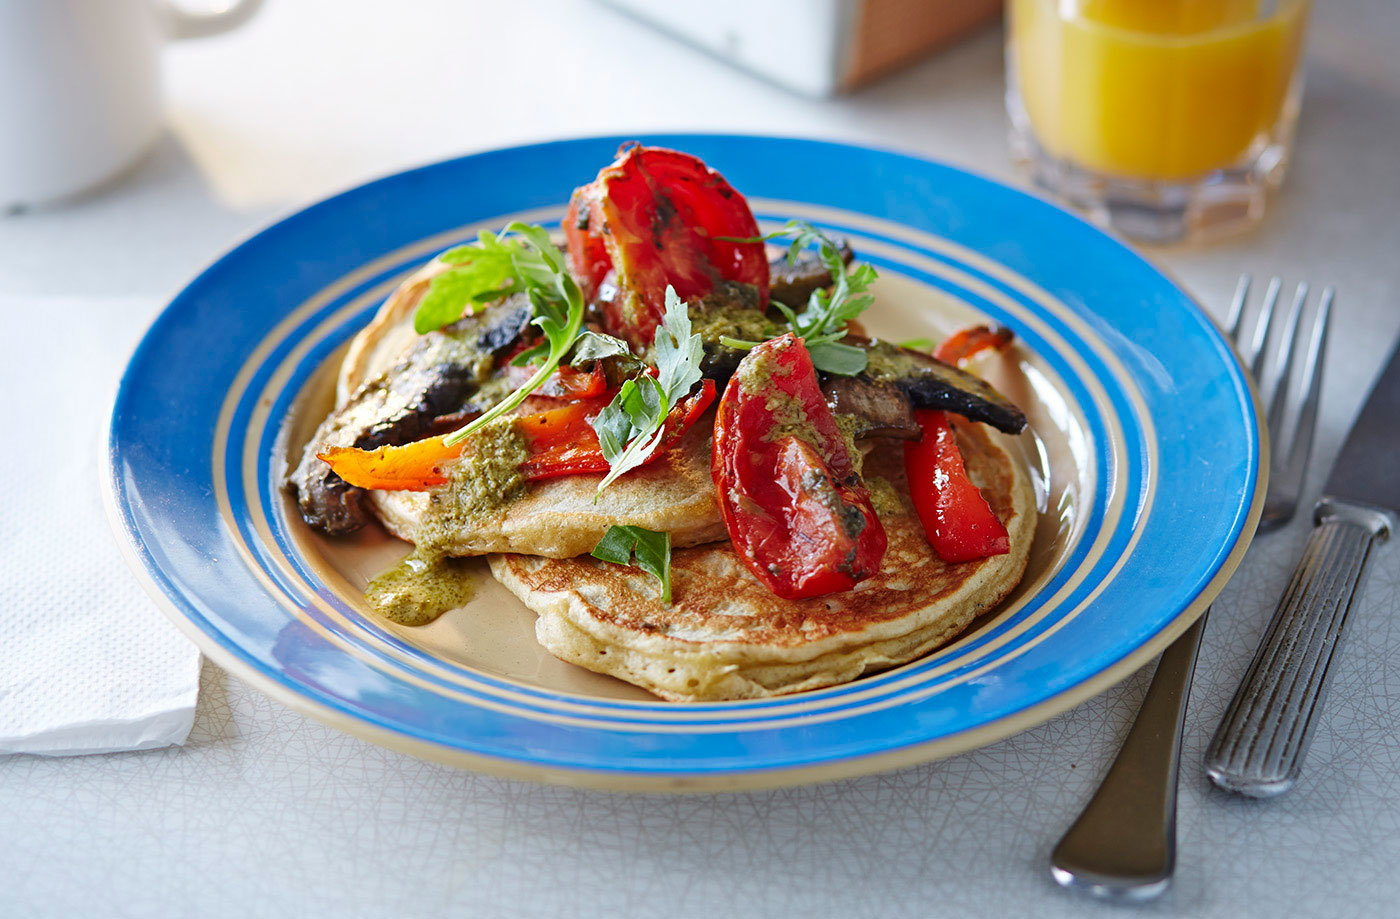 Buttermilk pancakes with roasted tomatoes, peppers and mushrooms recipe